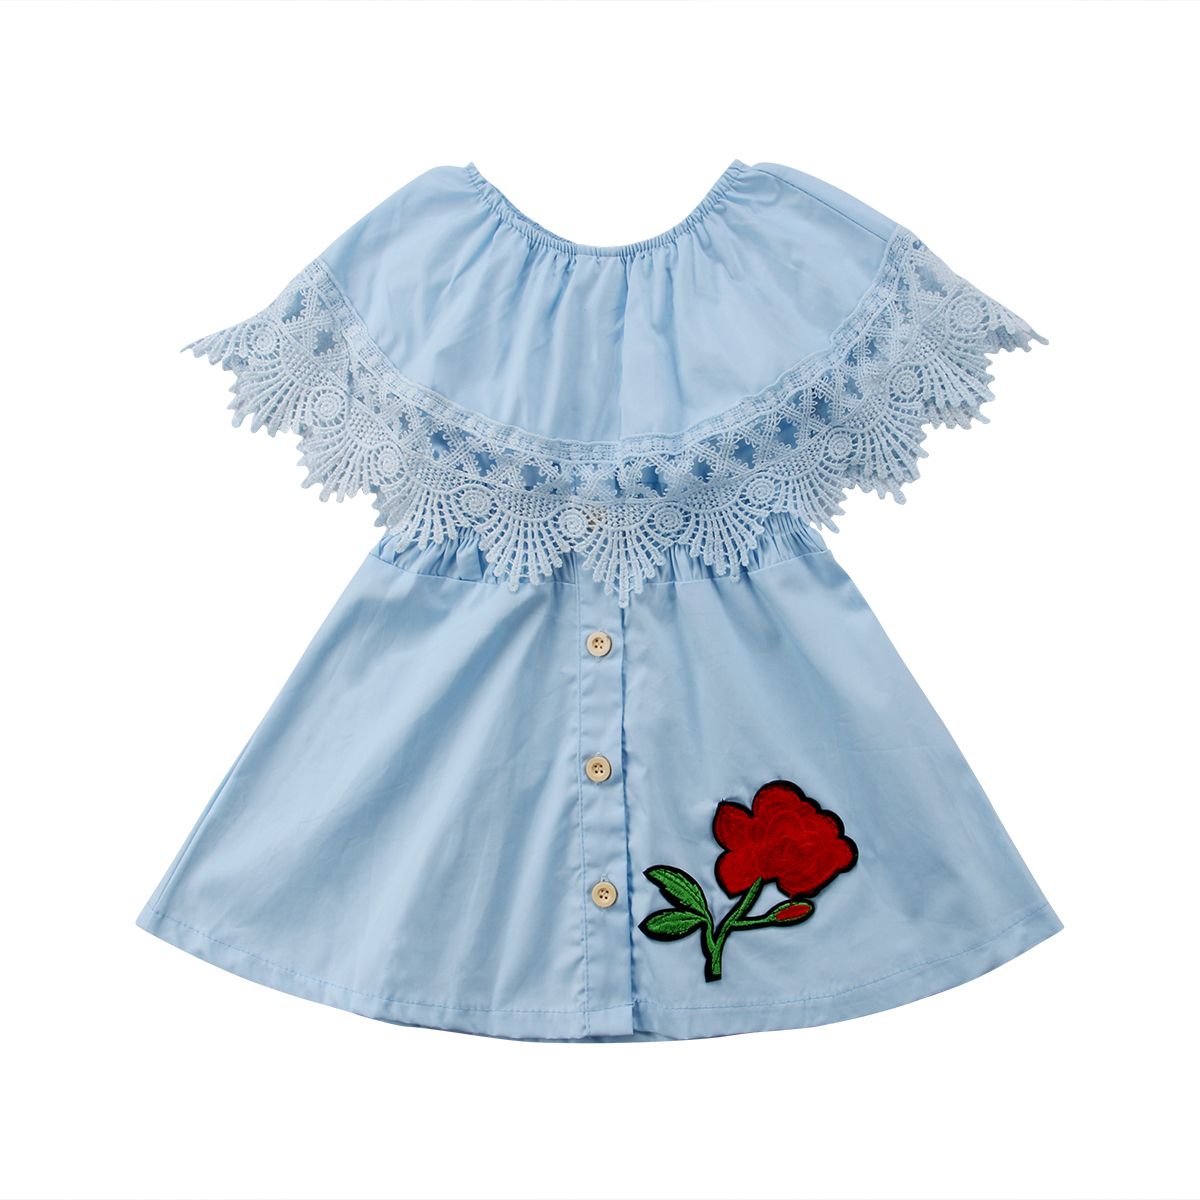 Toddler Kids Baby Girl Dress Summer Lace Ruffle Embroidery Flower ...